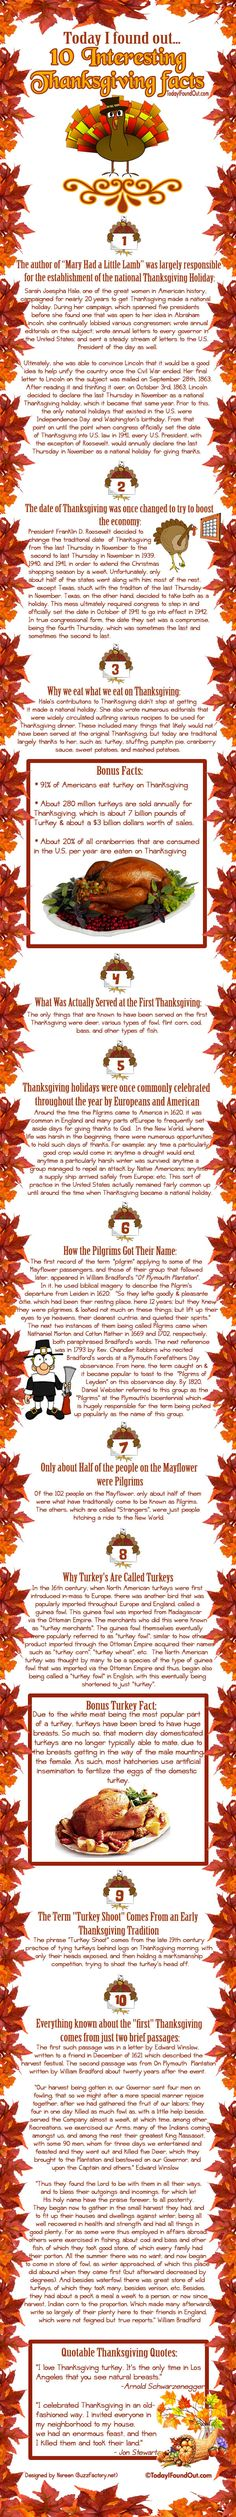 10 Interesting Thanksgiving Facts